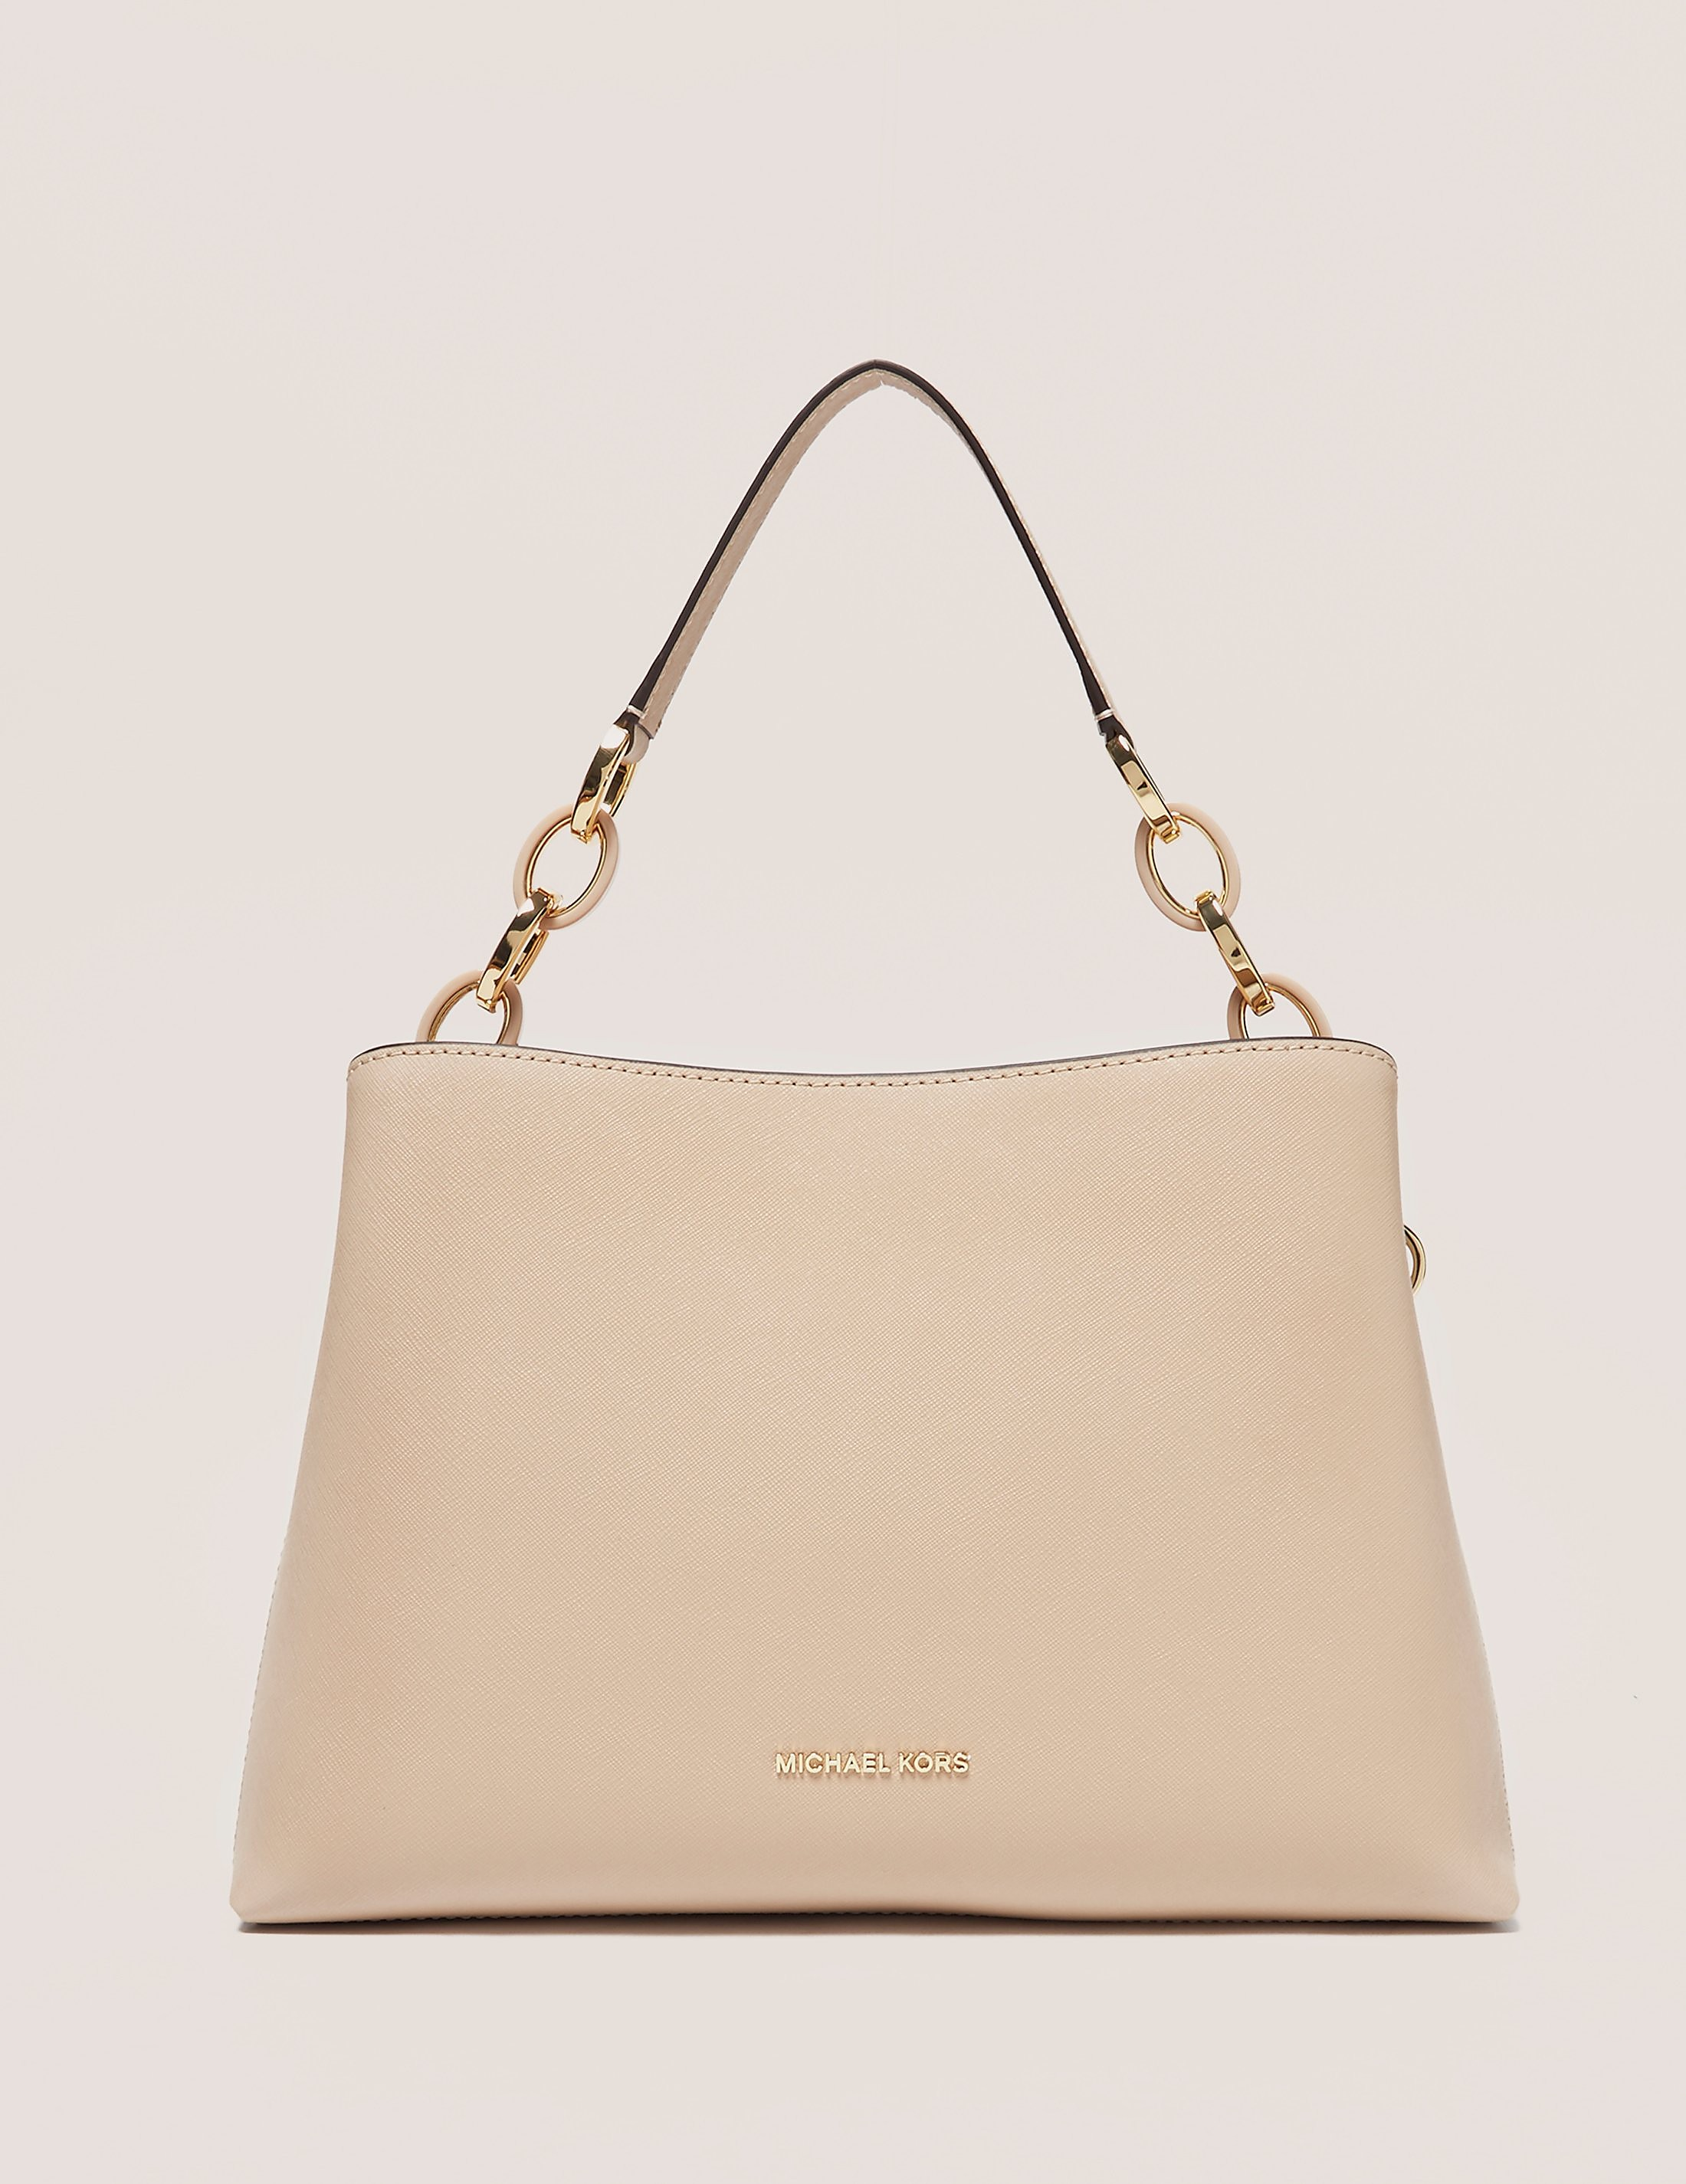 Michael Kors Portia Large Shoulder Bag